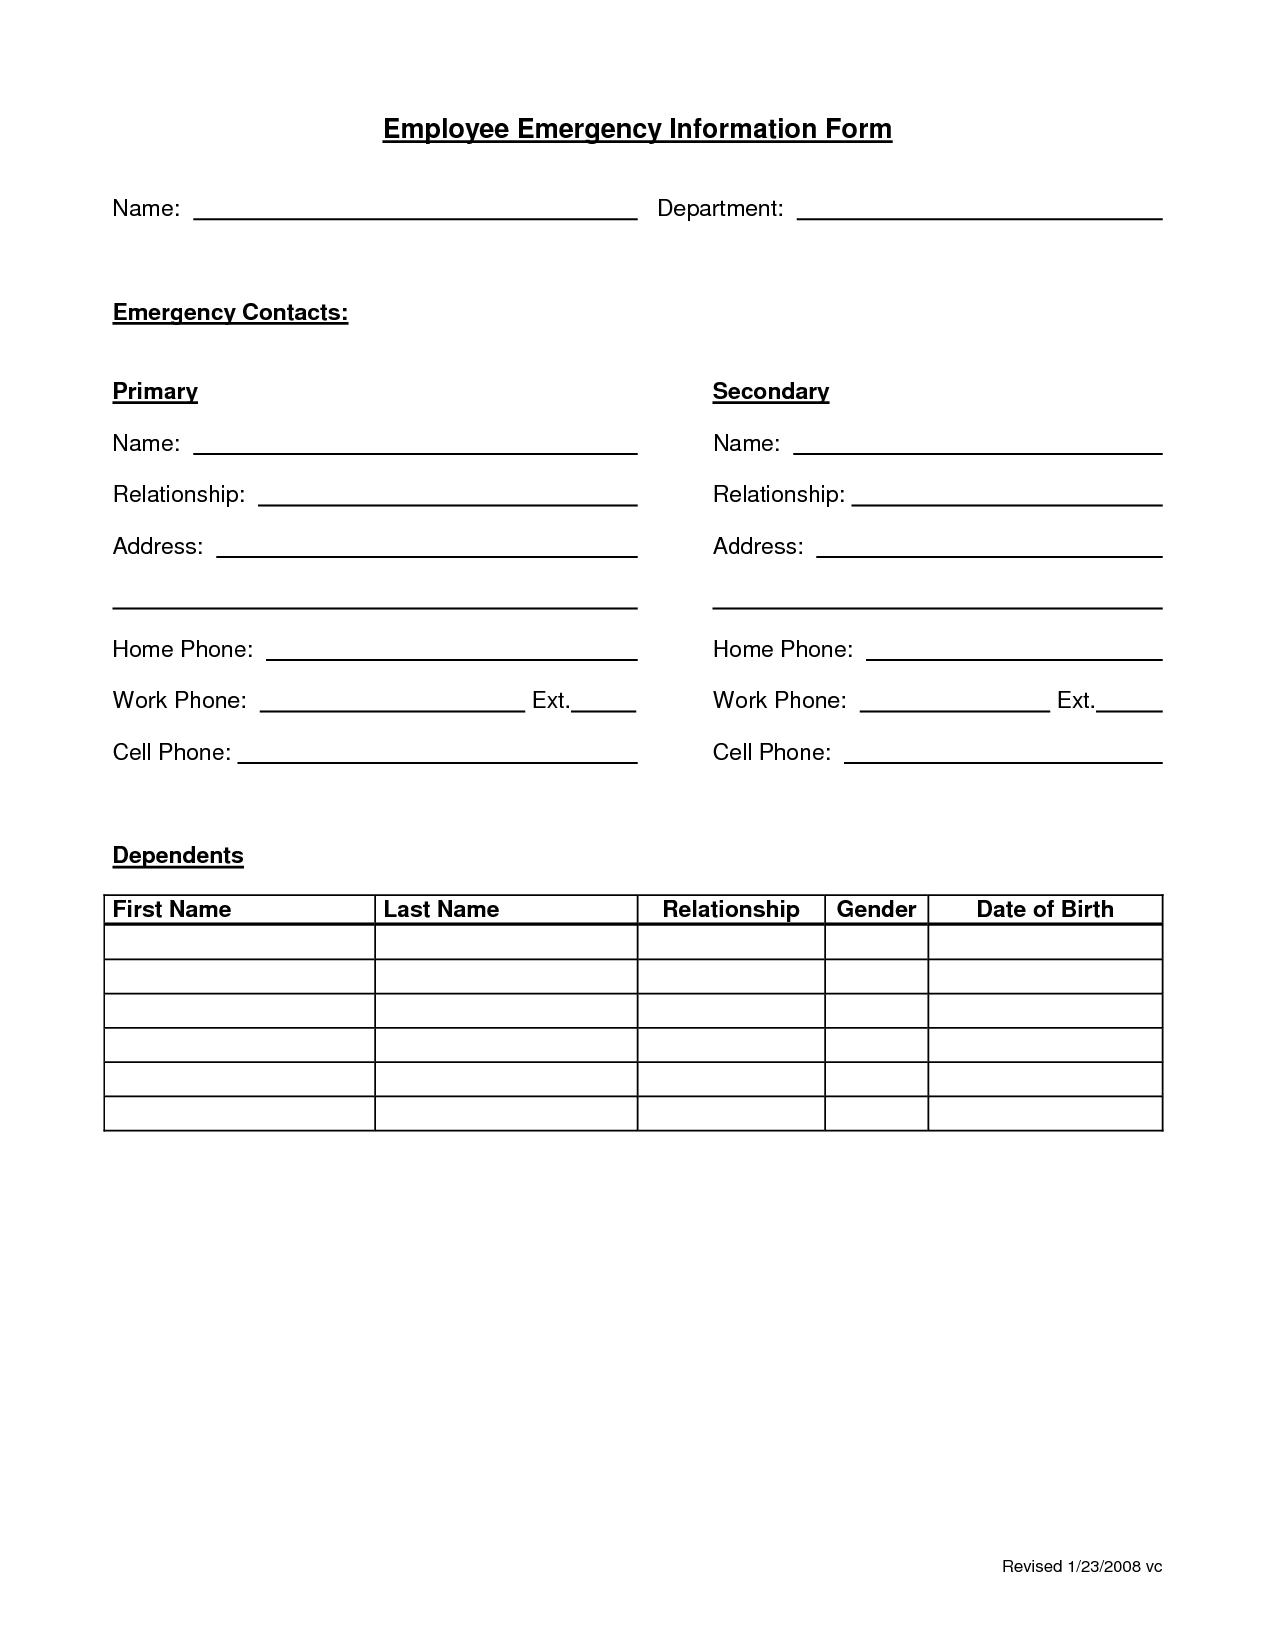 Employee Emergency Form  Employee Forms    Business